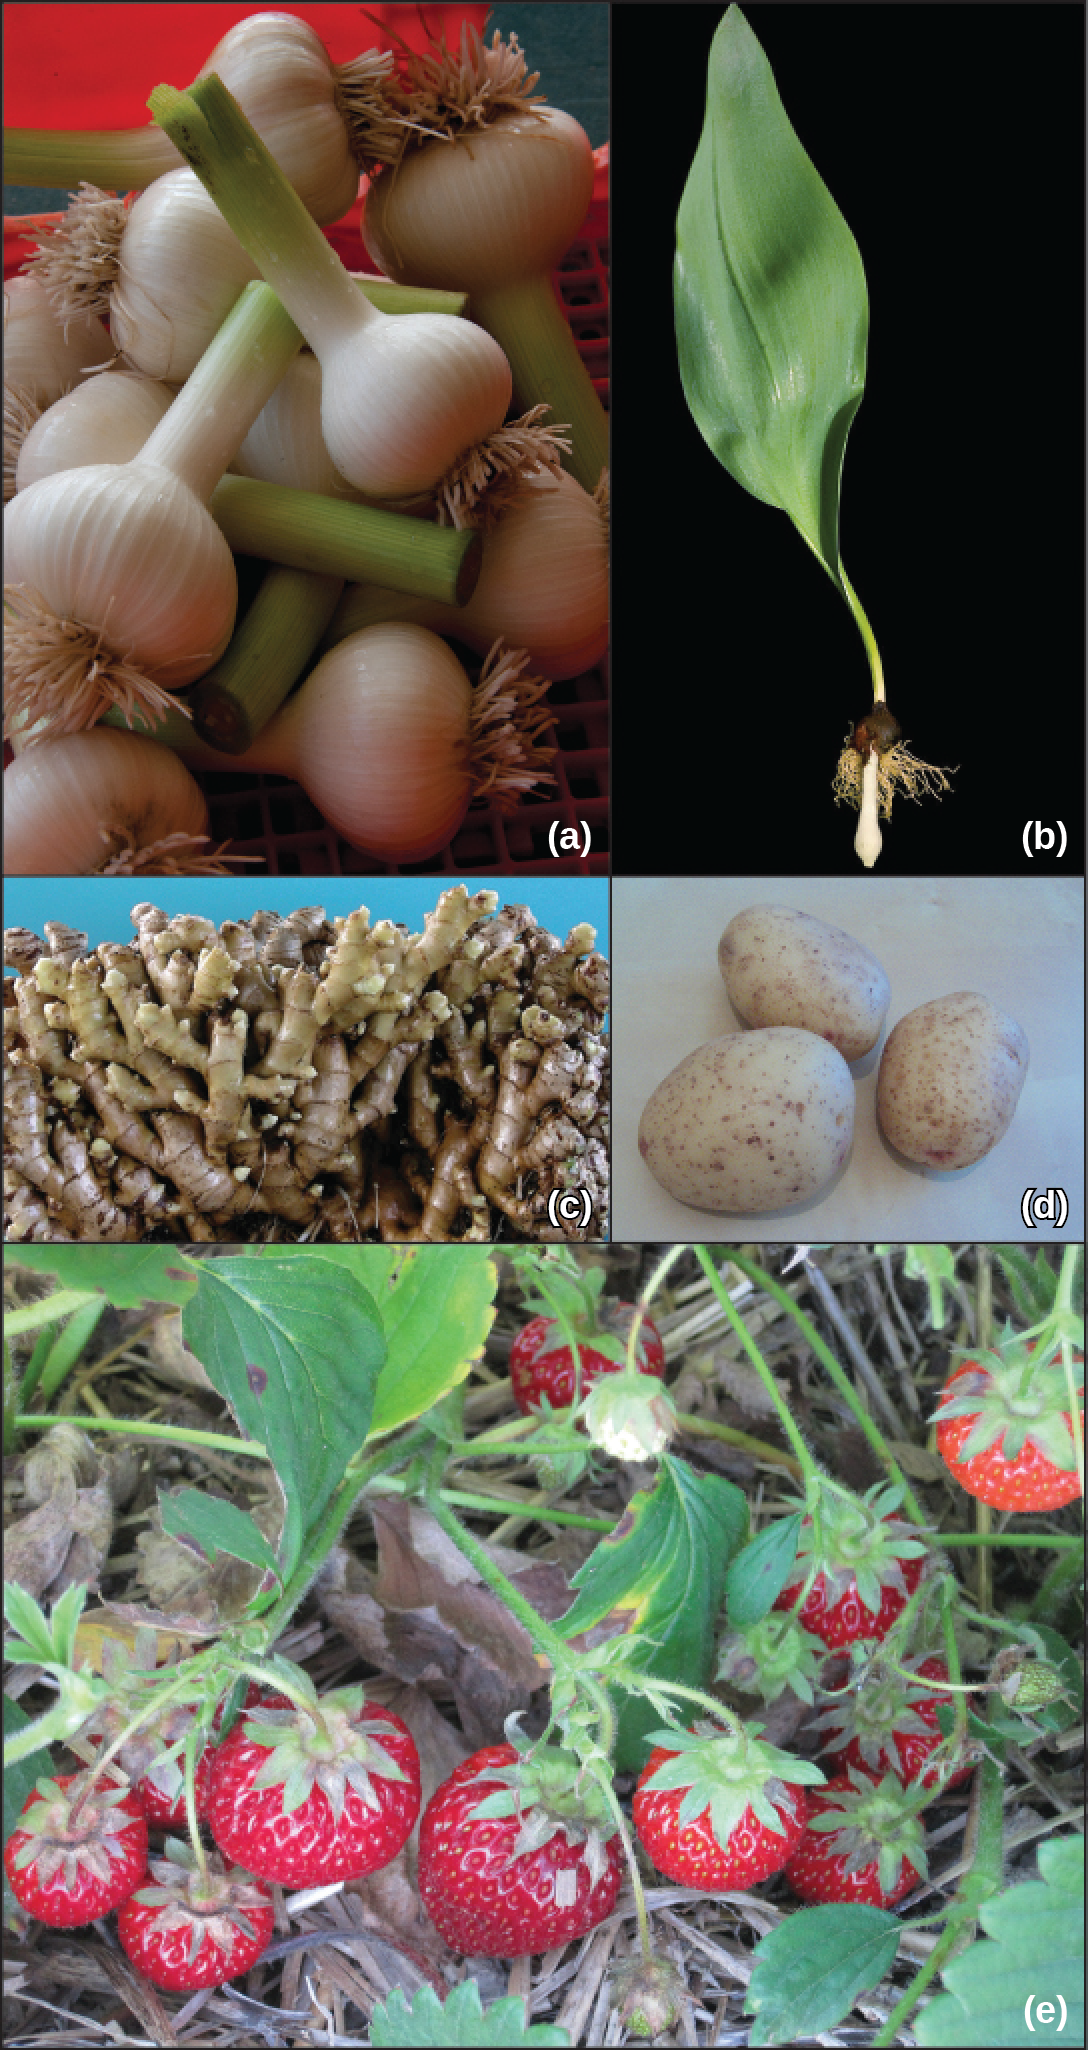 Shown are photos of various roots. Part A shows bulbous garlic roots. Part B shows a tulip bulb that has sprouted a leaf. Part C shows ginger root, which has many branches. Part D shows three potato tubers. Part E shows a strawberry plant.